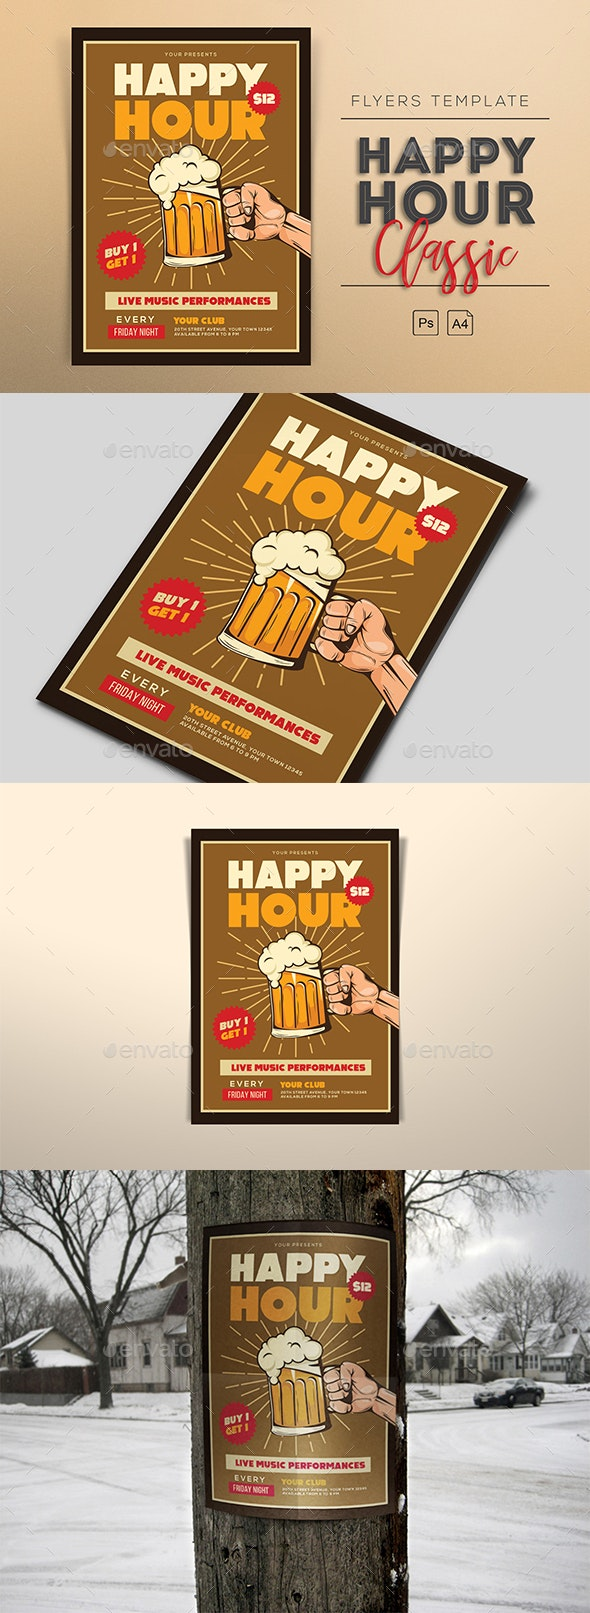 Classic Happy Hour Flyers - Clubs & Parties Events